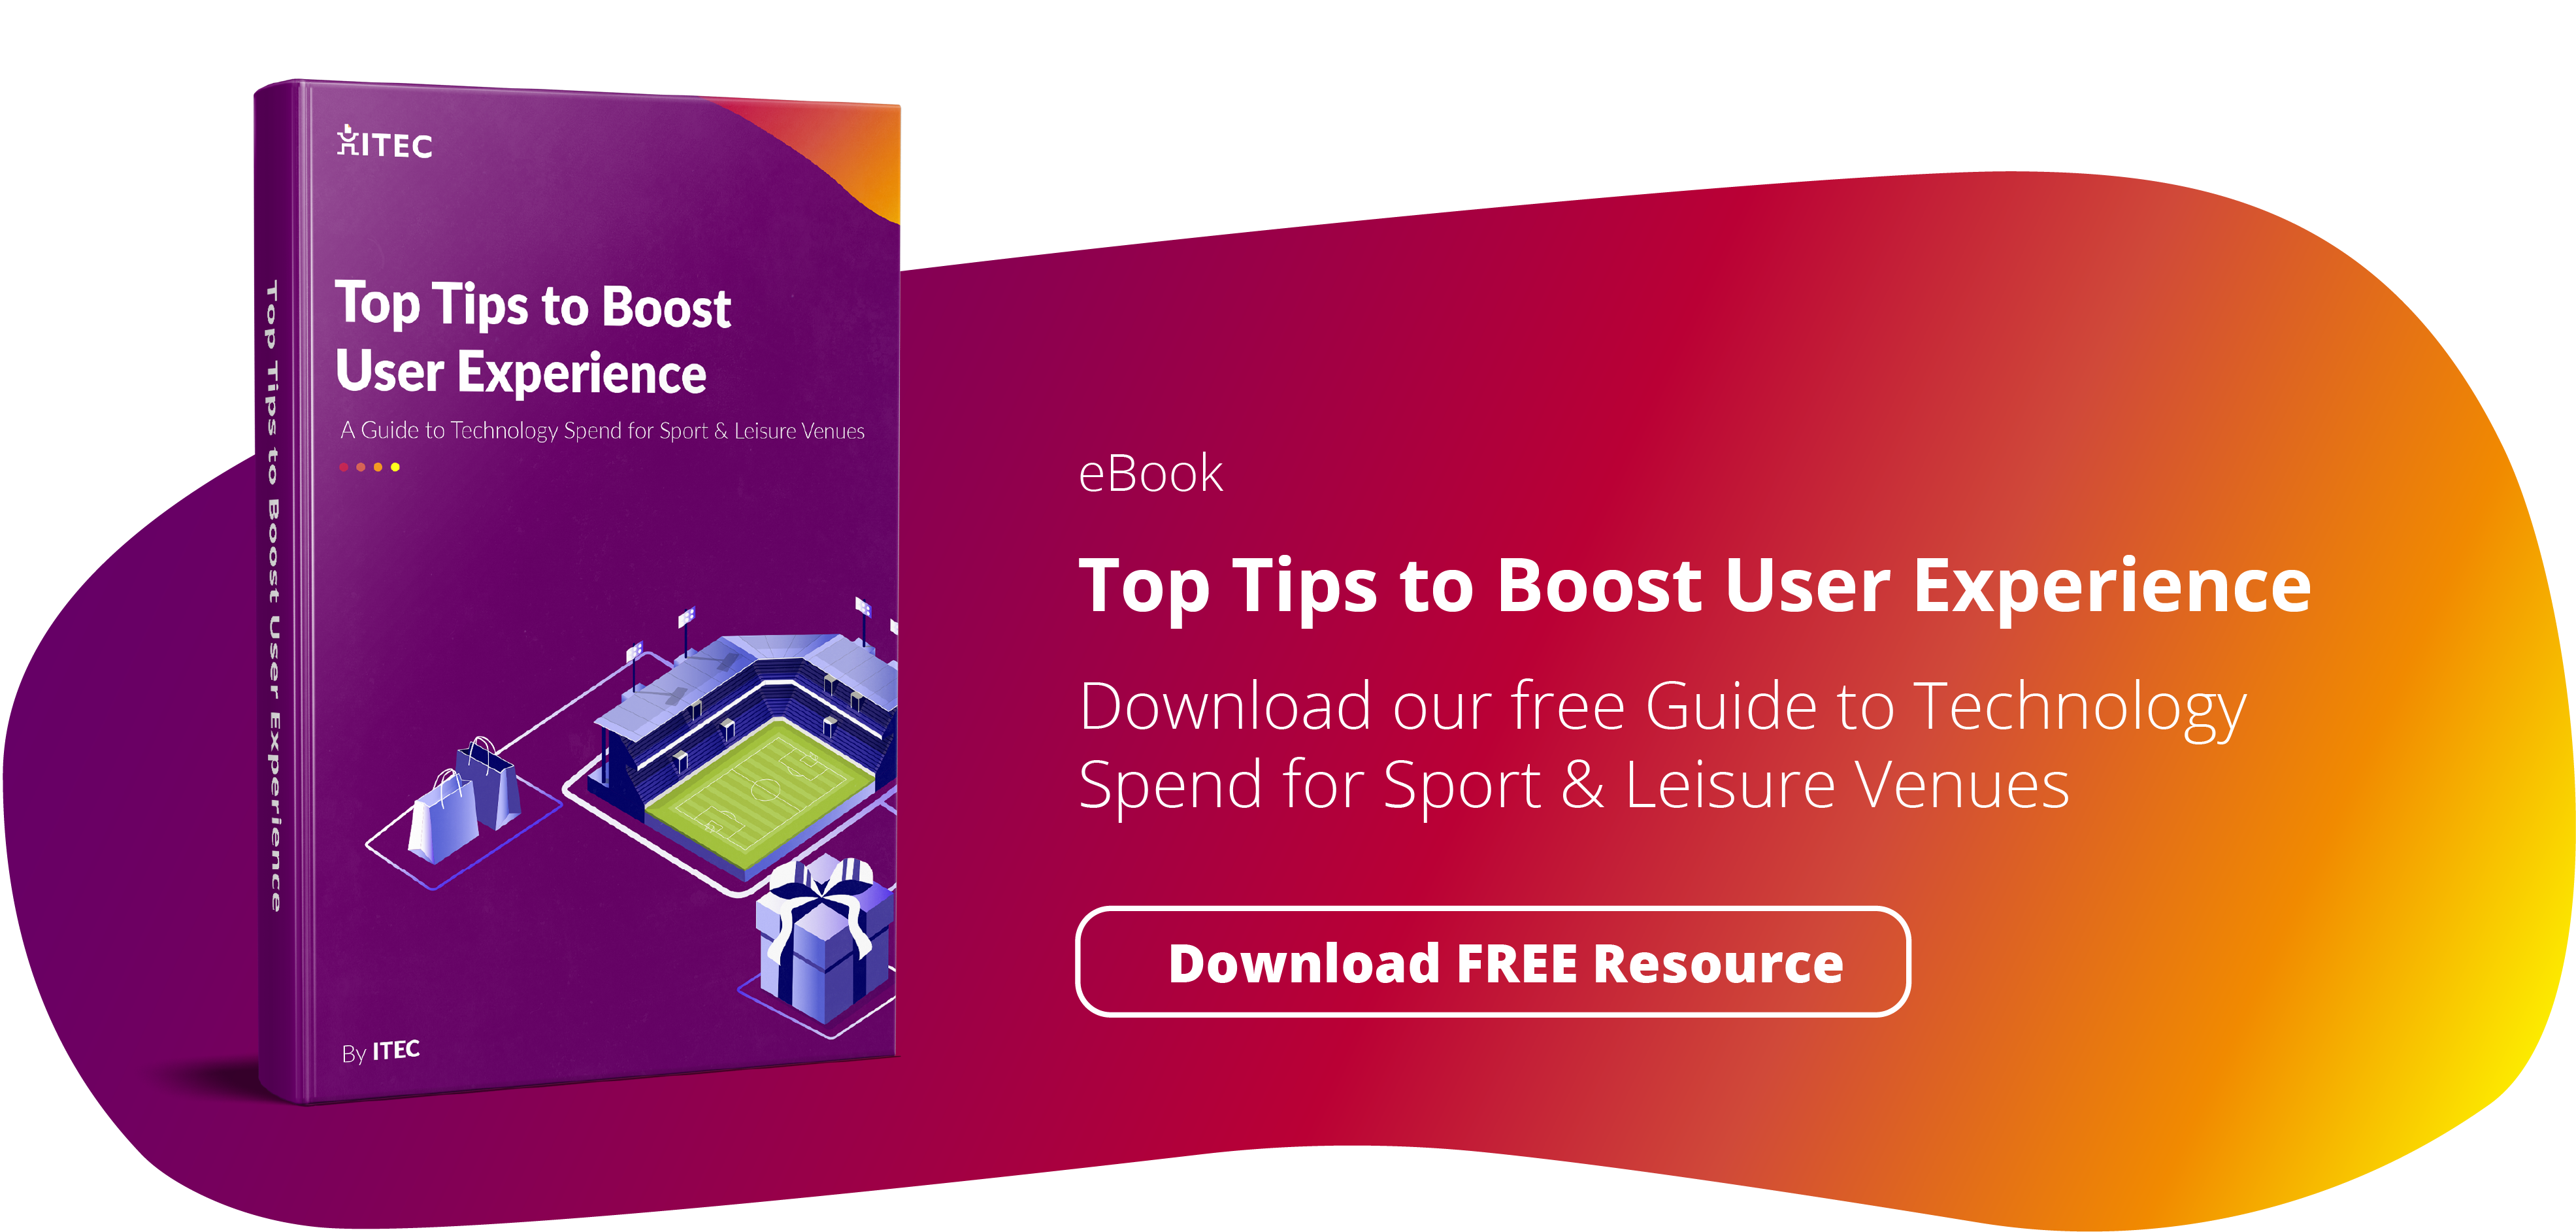 Sports_&_Leisure_-_Ebook_-_Adv_module_for_emails_and_website-1